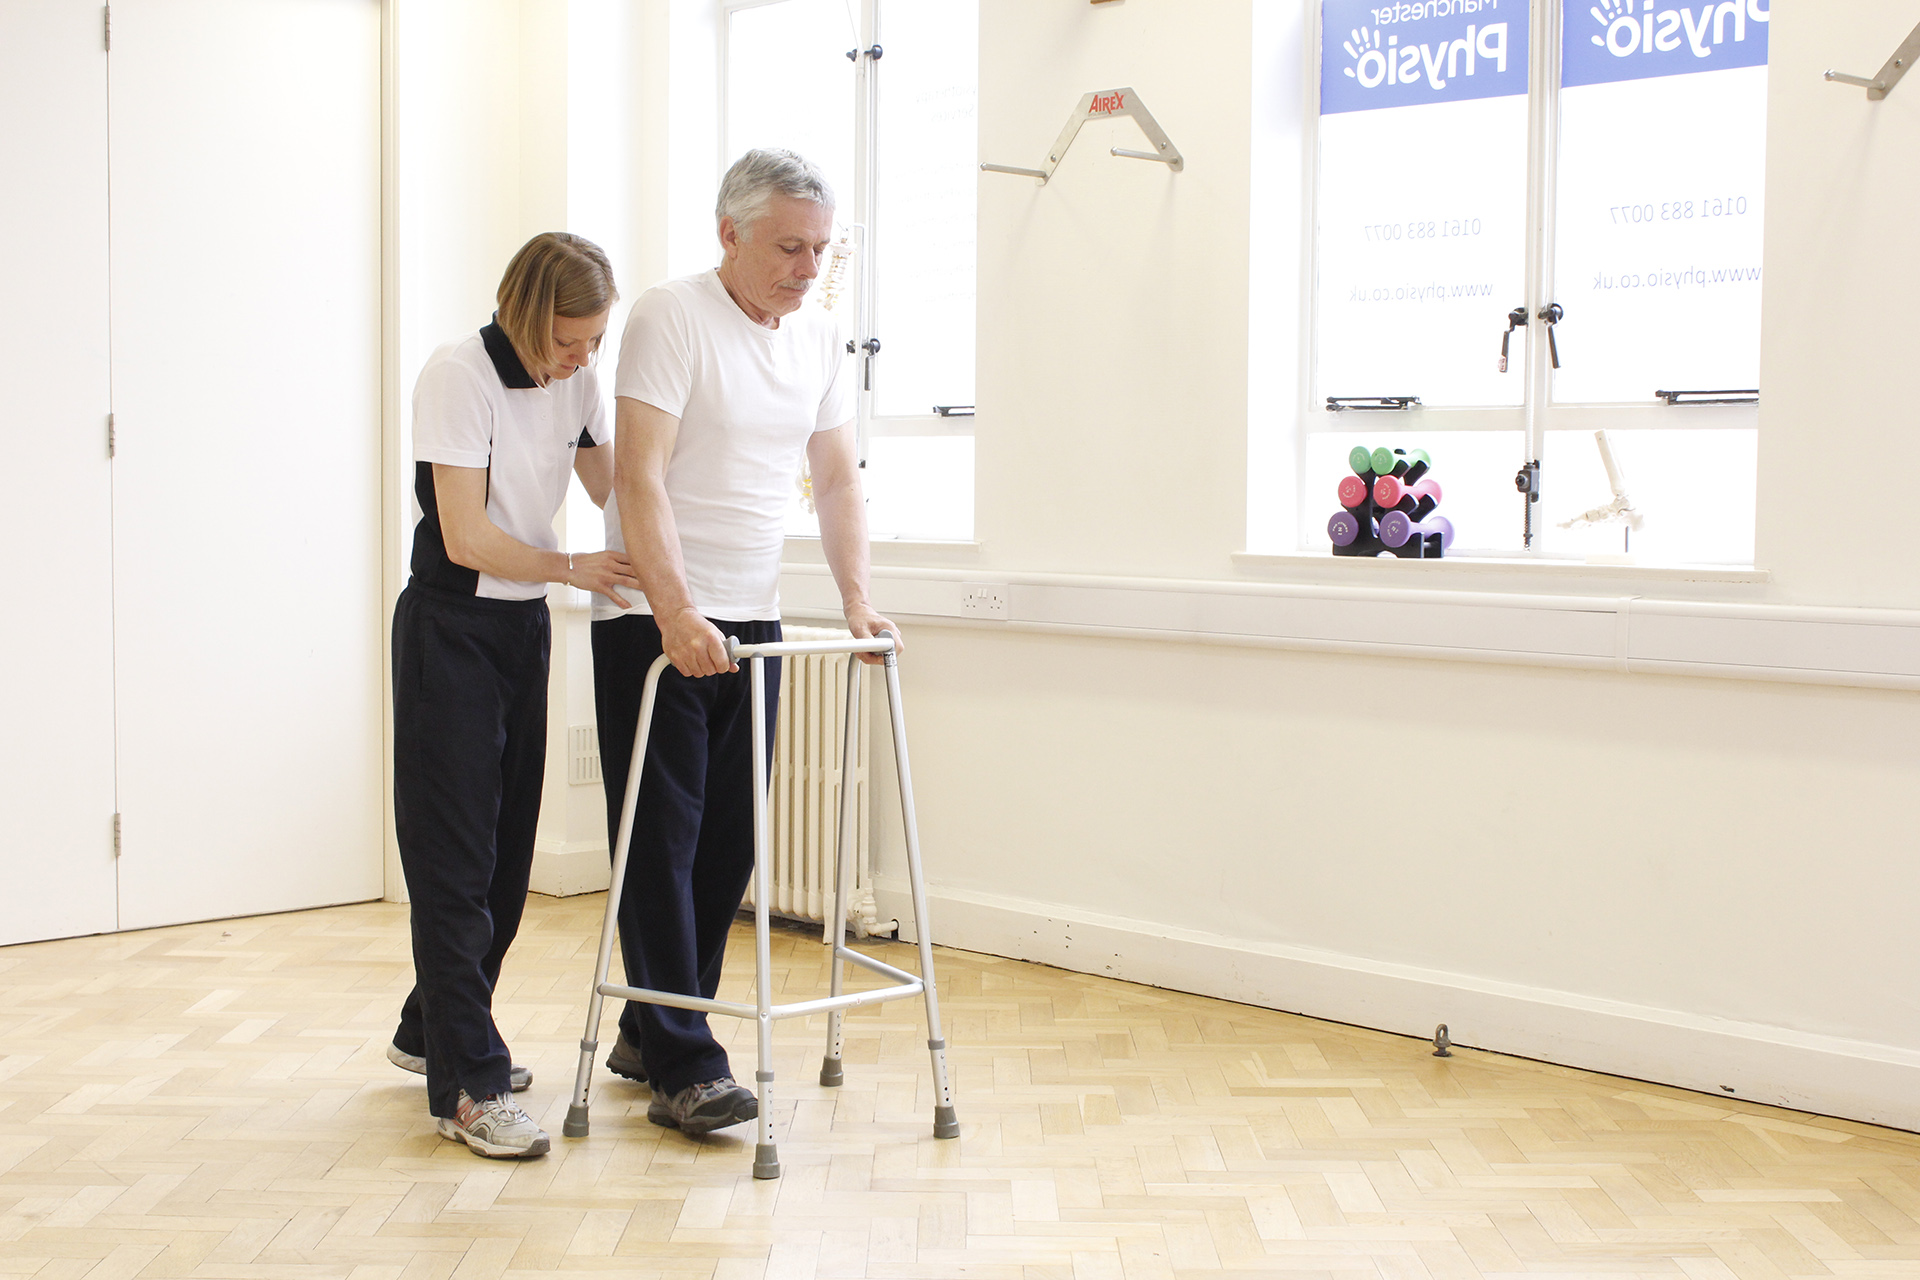 Fall Prevention Programmes